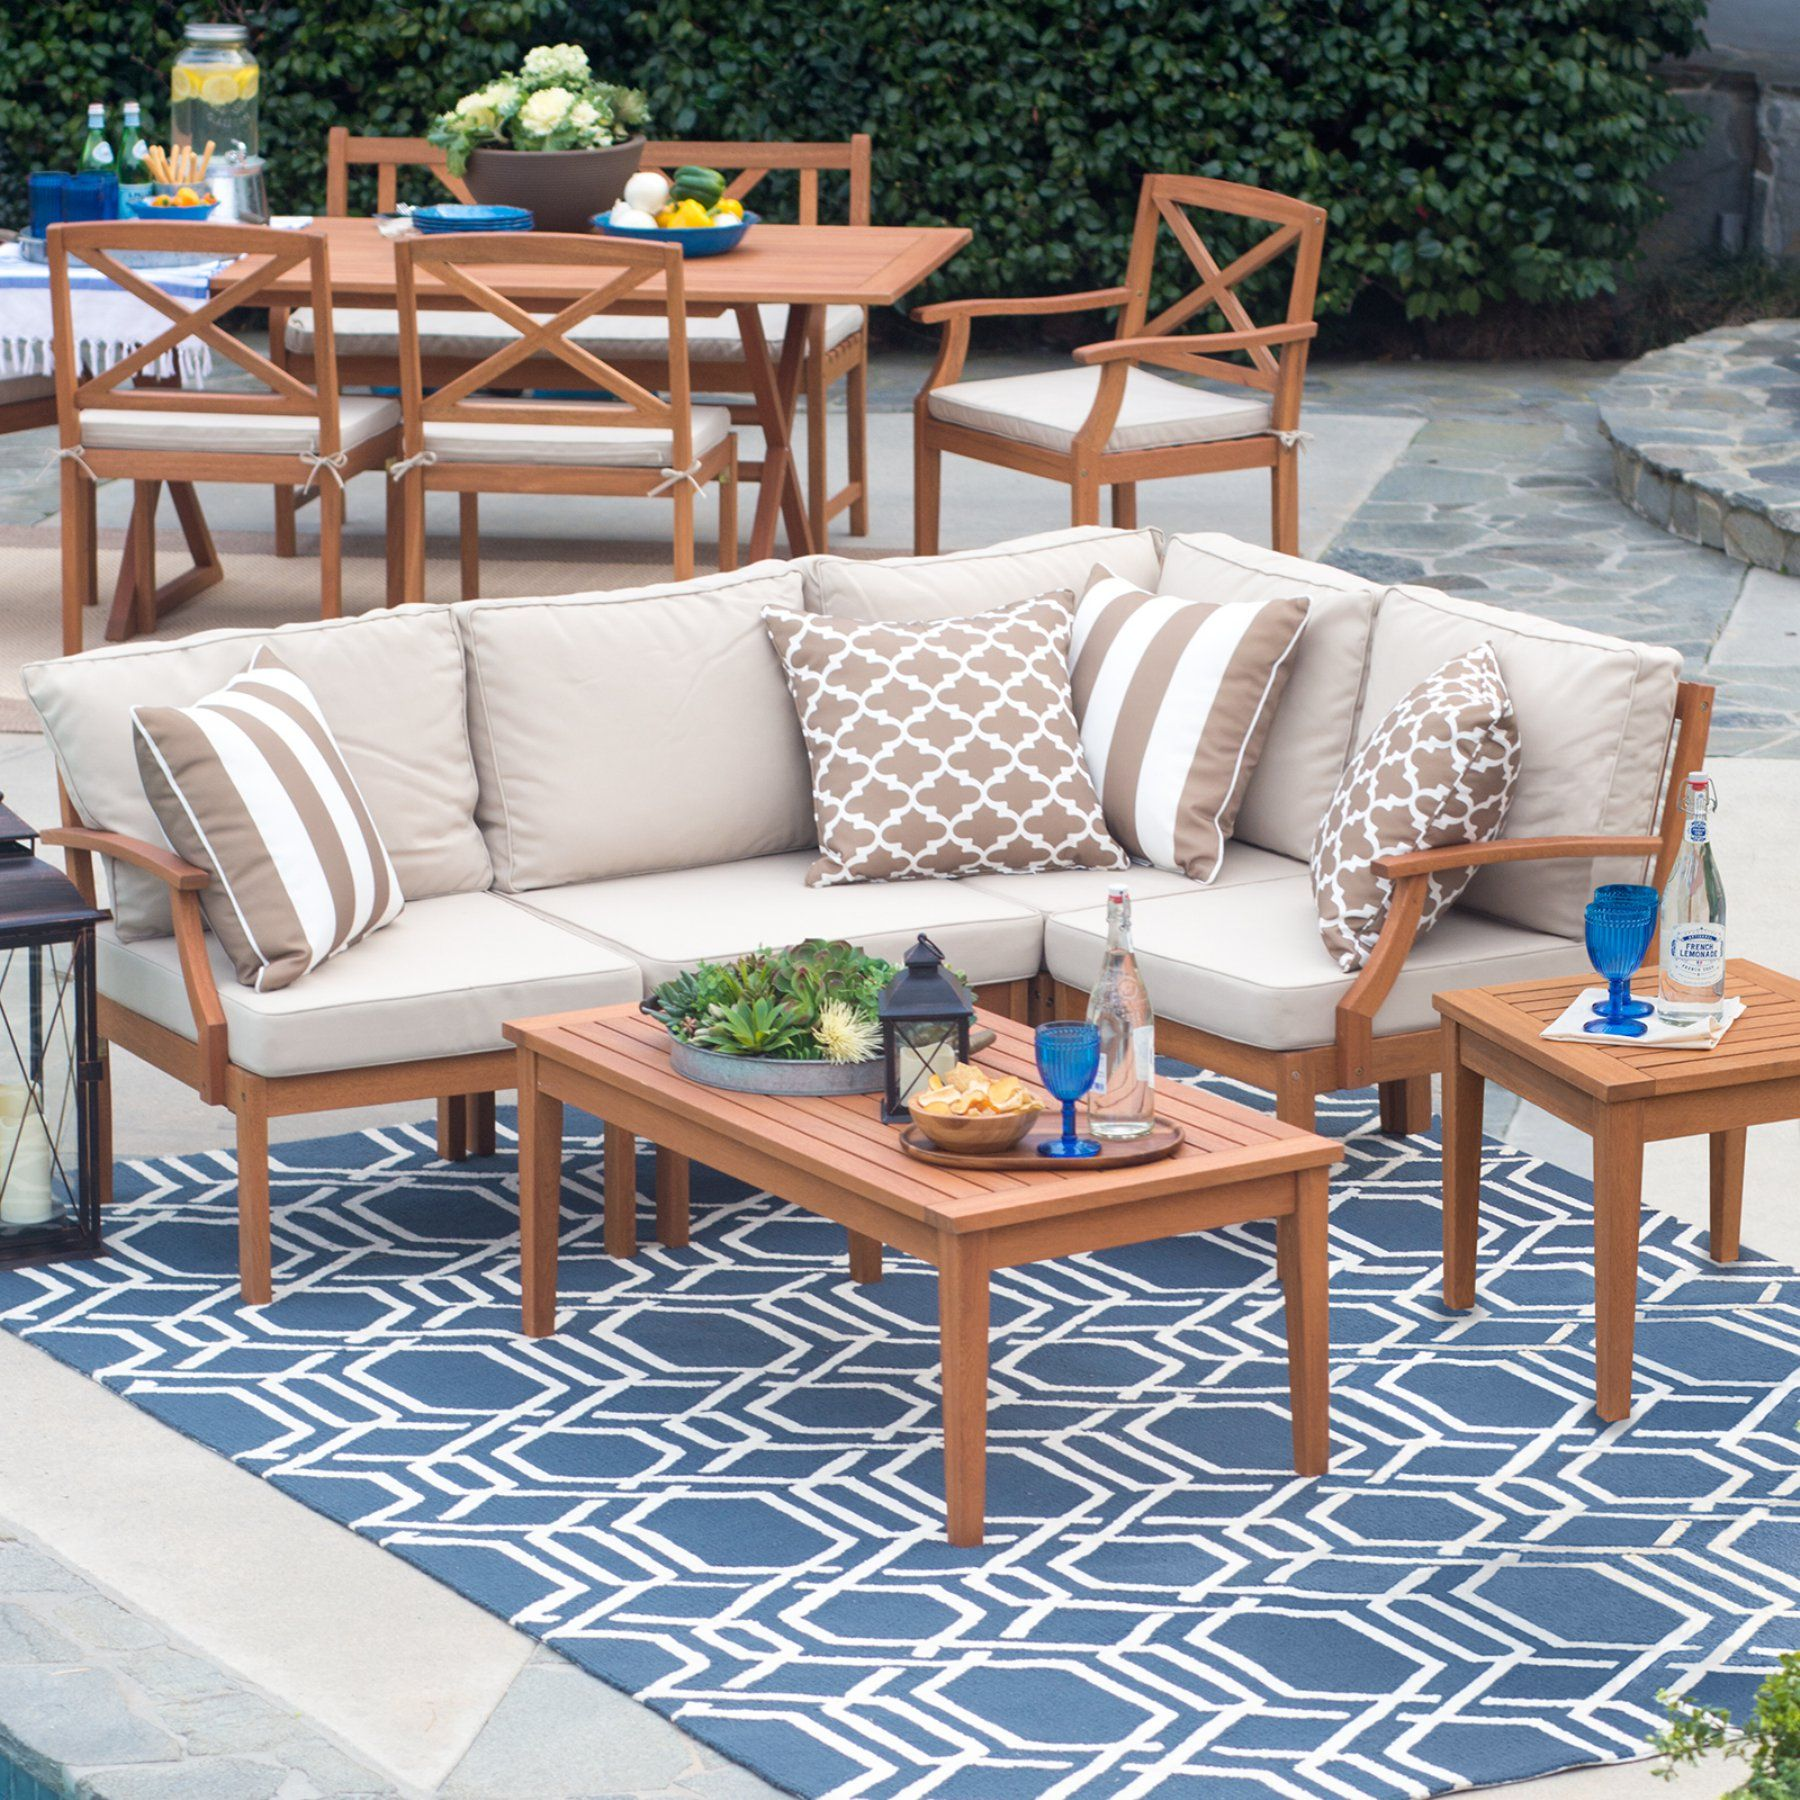 Belham Living Brighton Outdoor Wood Conversation Sectional ... on Belham Living Brighton Outdoor Daybed id=88368